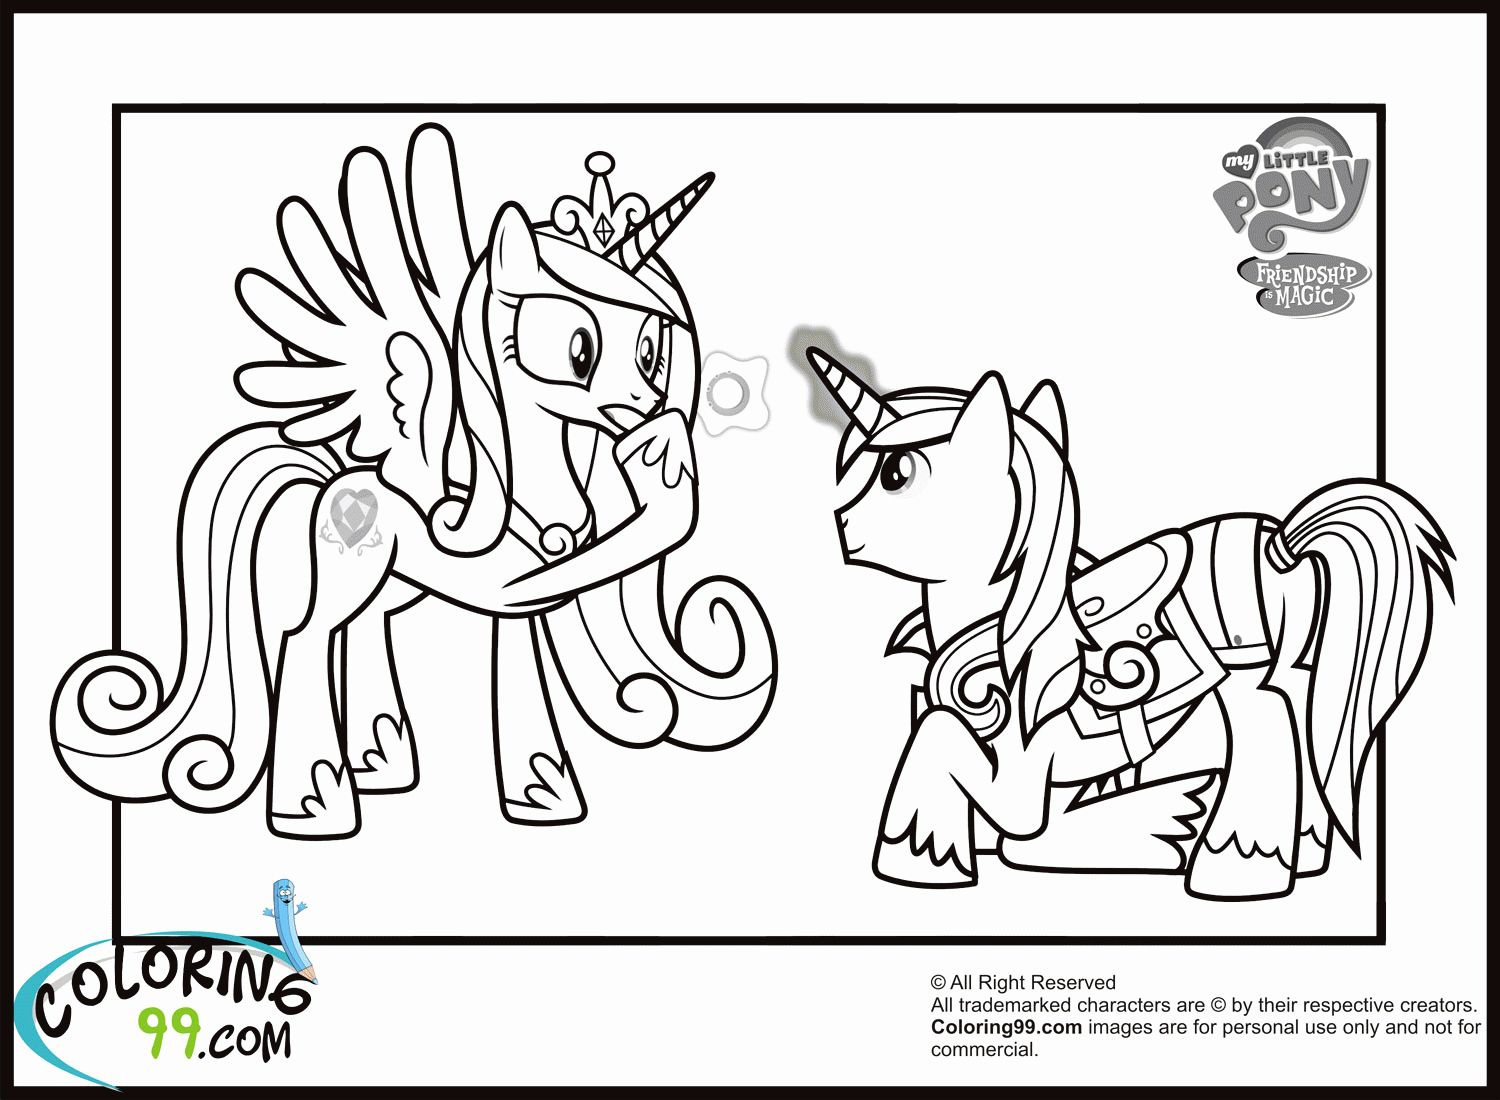 Princess Cadence Coloring Page Lovely My Little Pony Coloring Pages Princess Cadence Wedding My Little Pony Coloring Horse Coloring Pages Coloring Books